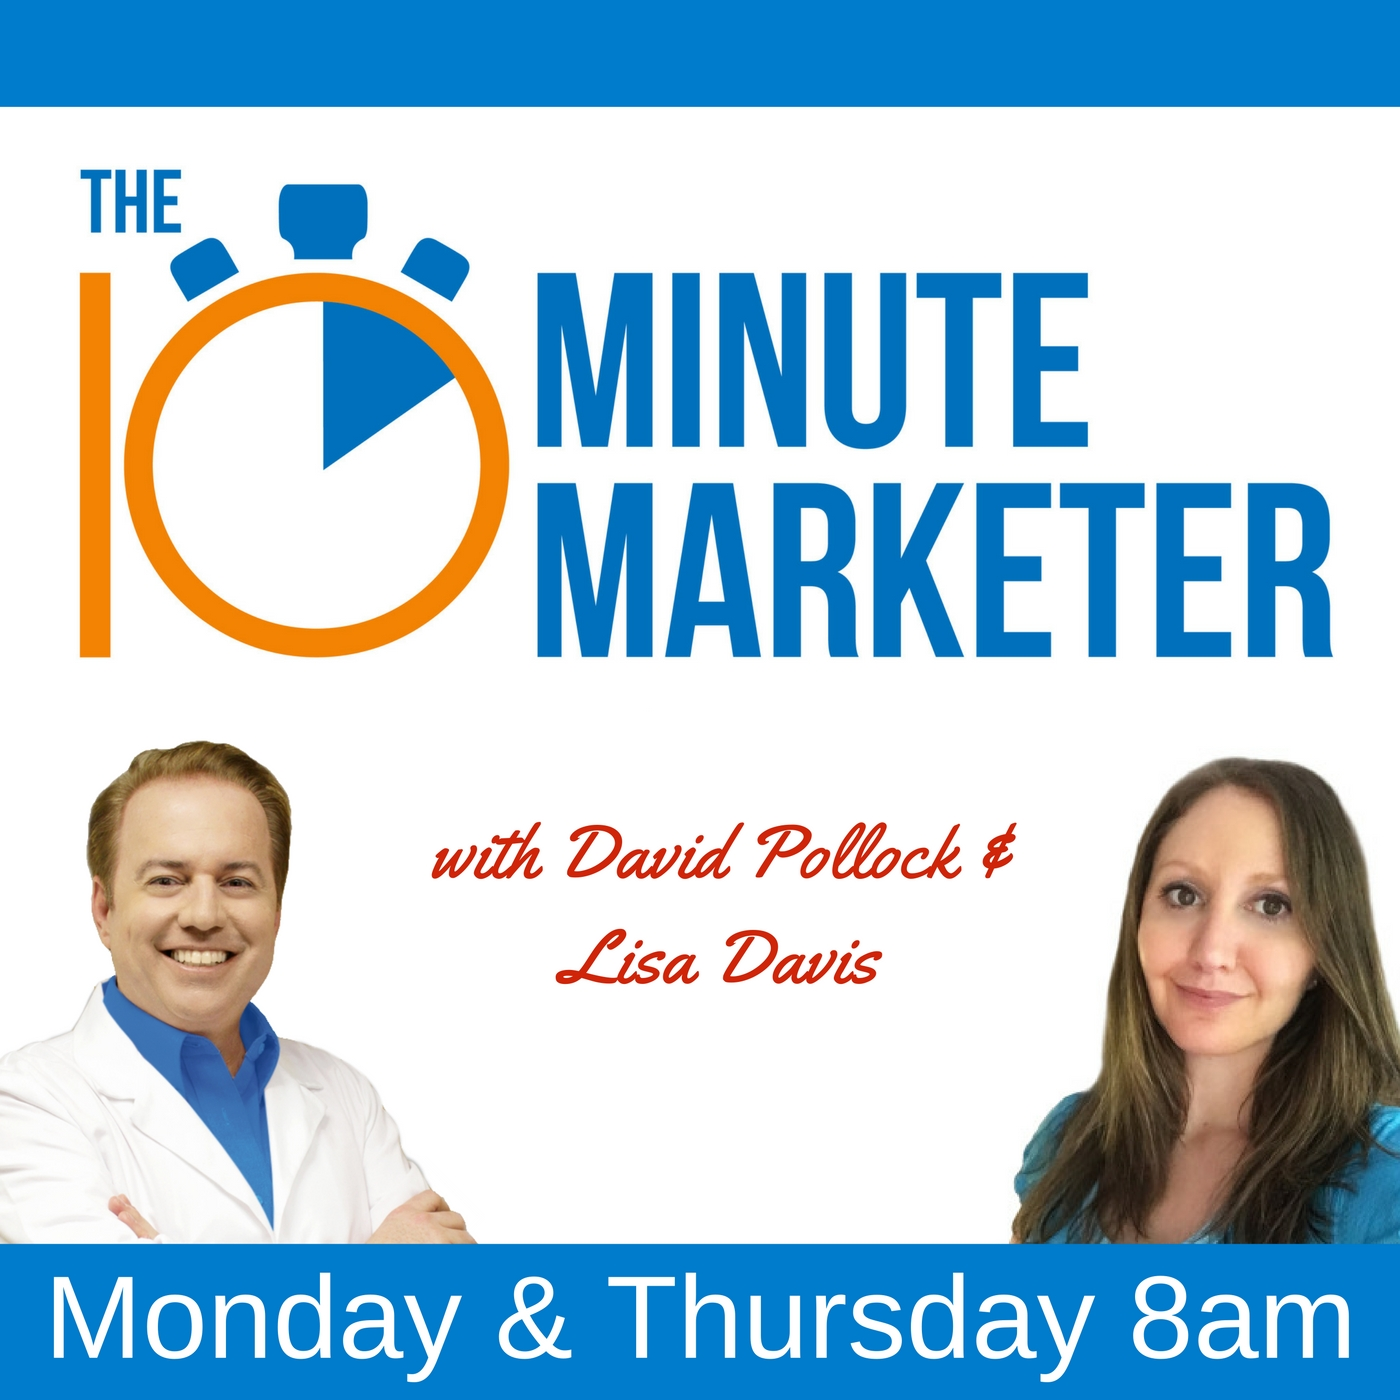 The 10 Minute Marketer